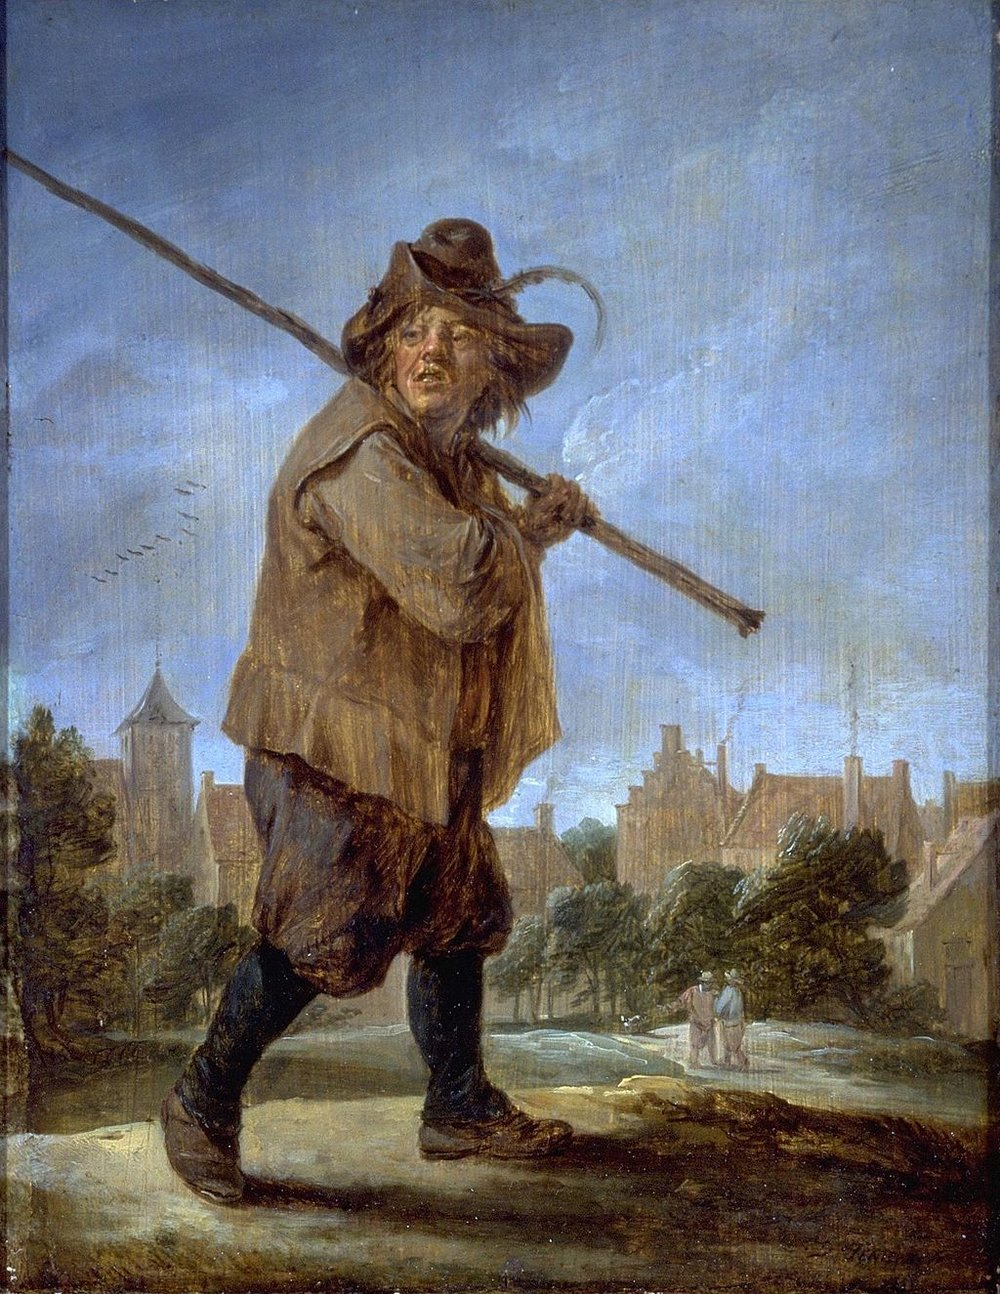 Peasant Walking, by David Teniers the Younger, circa 1670